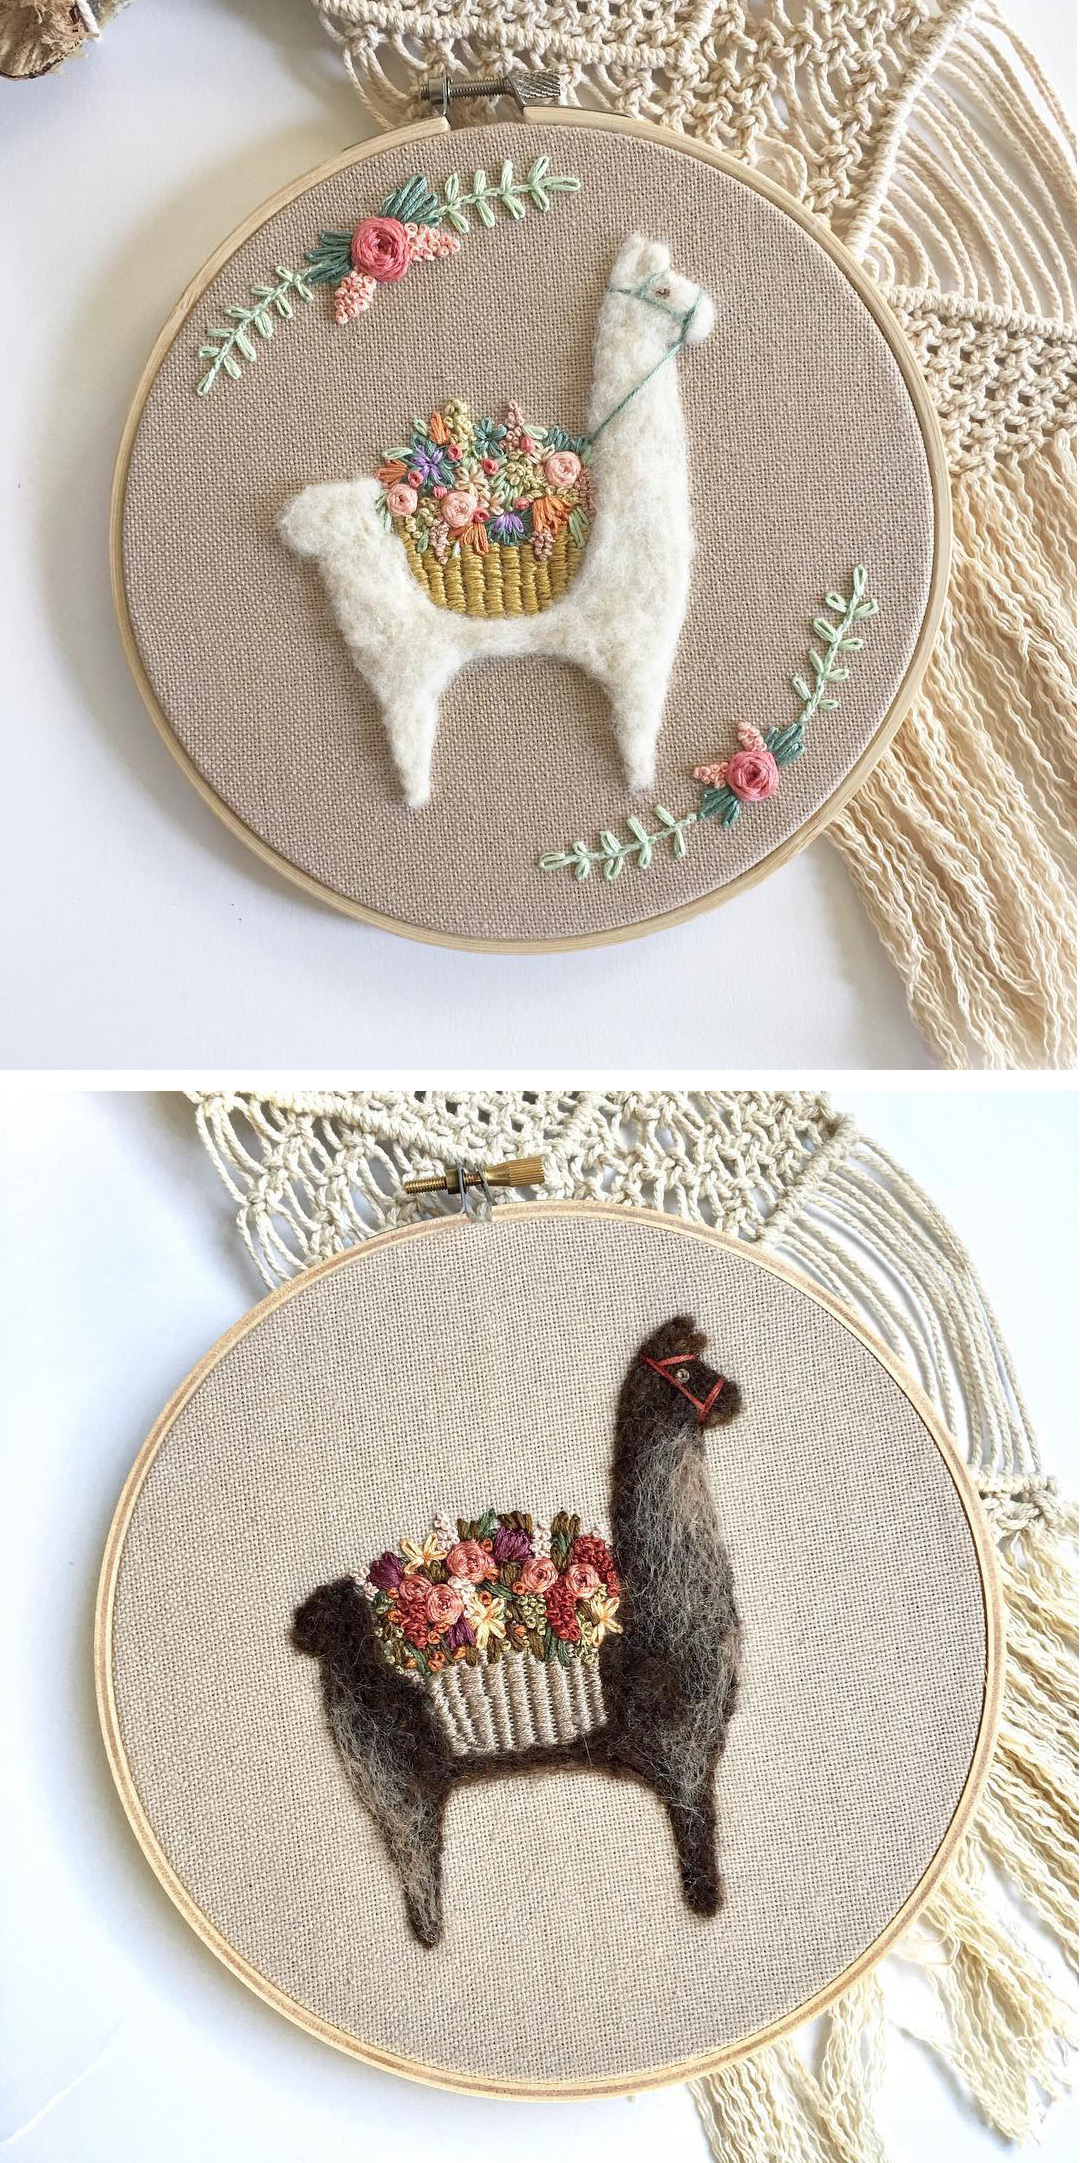 Fuzzy and Flora needle felting hoop art